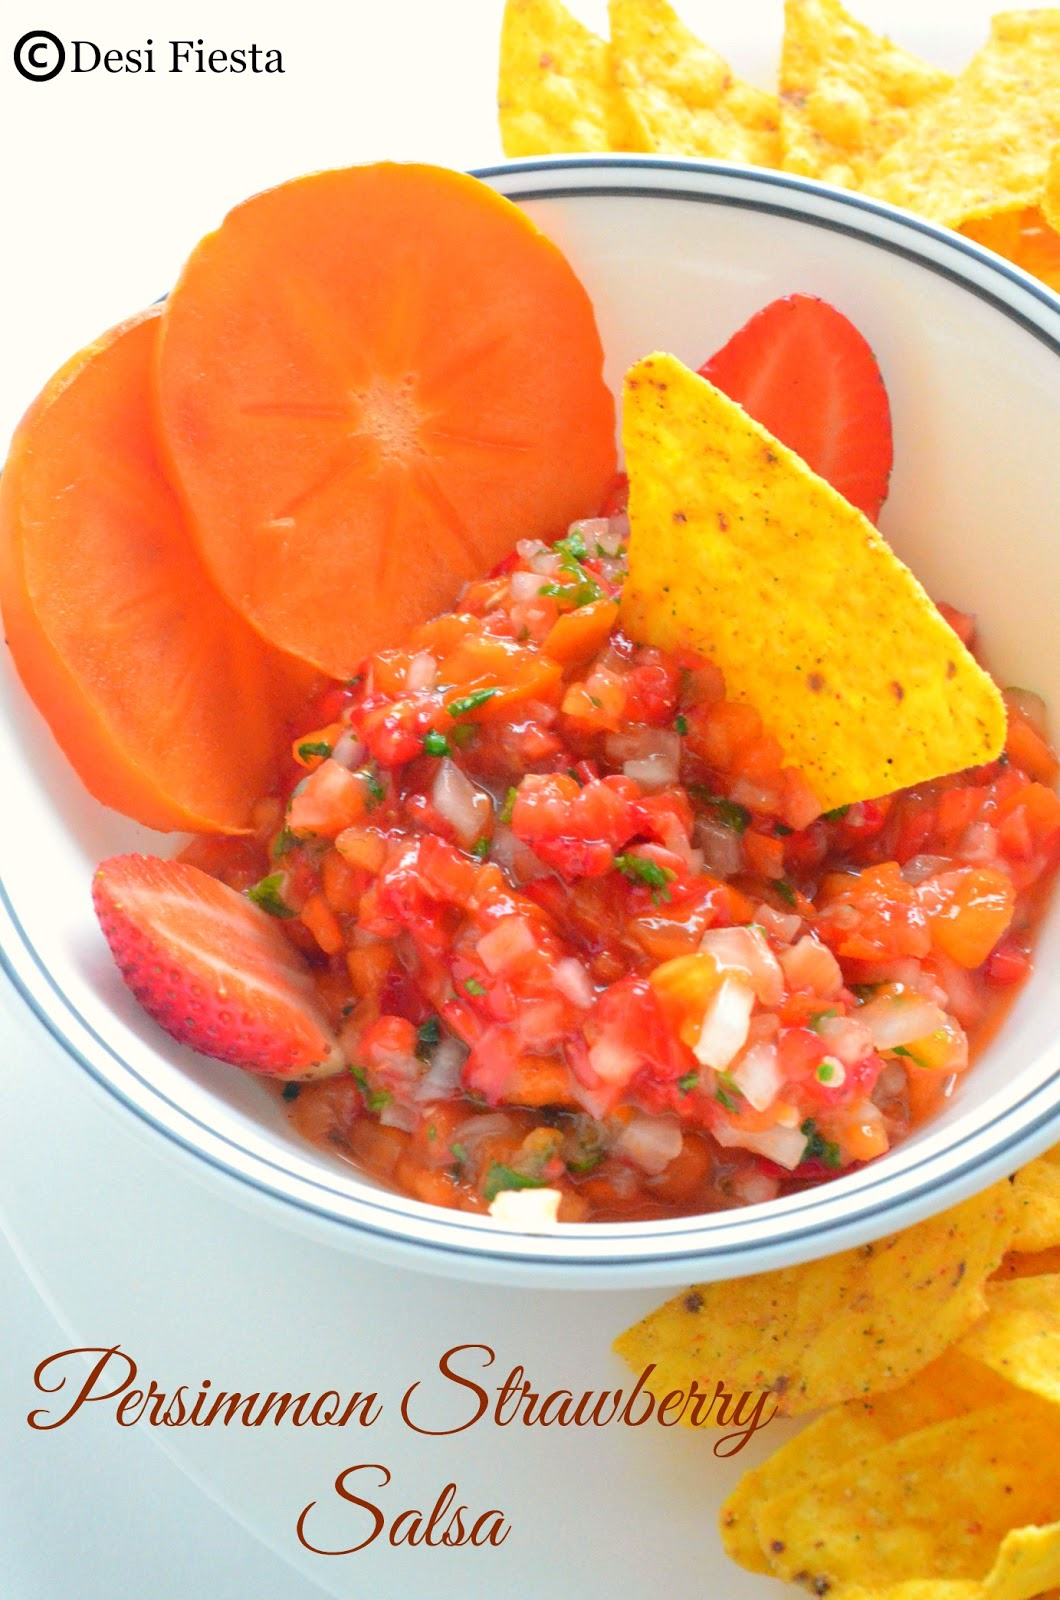 Chips with Salsa recipe